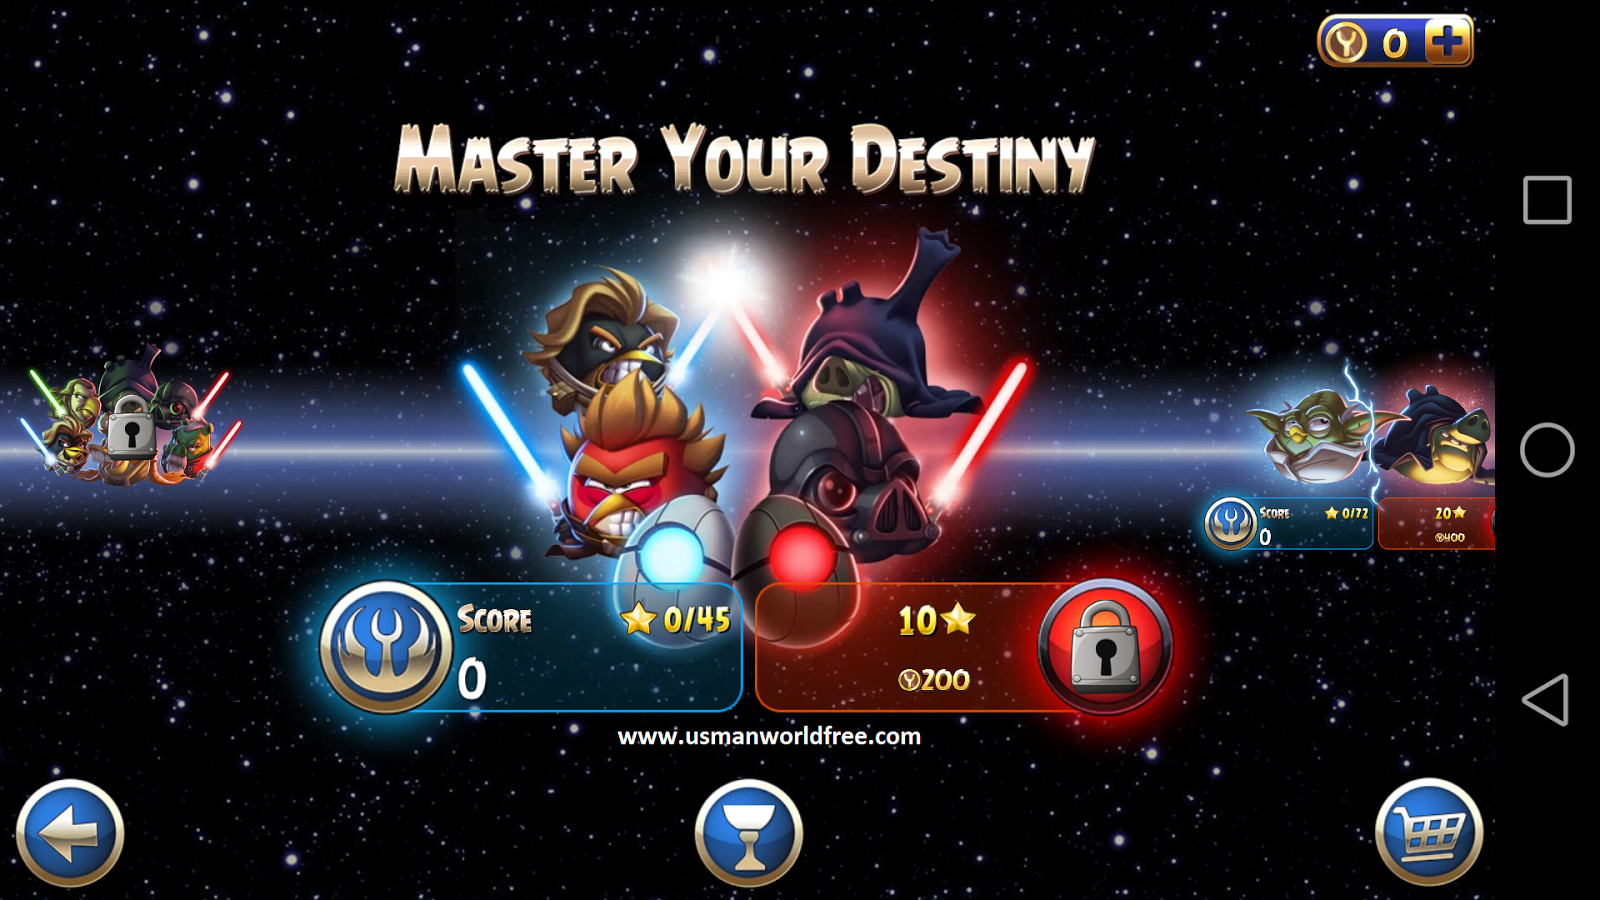 Features of Angry Birds Star Wars